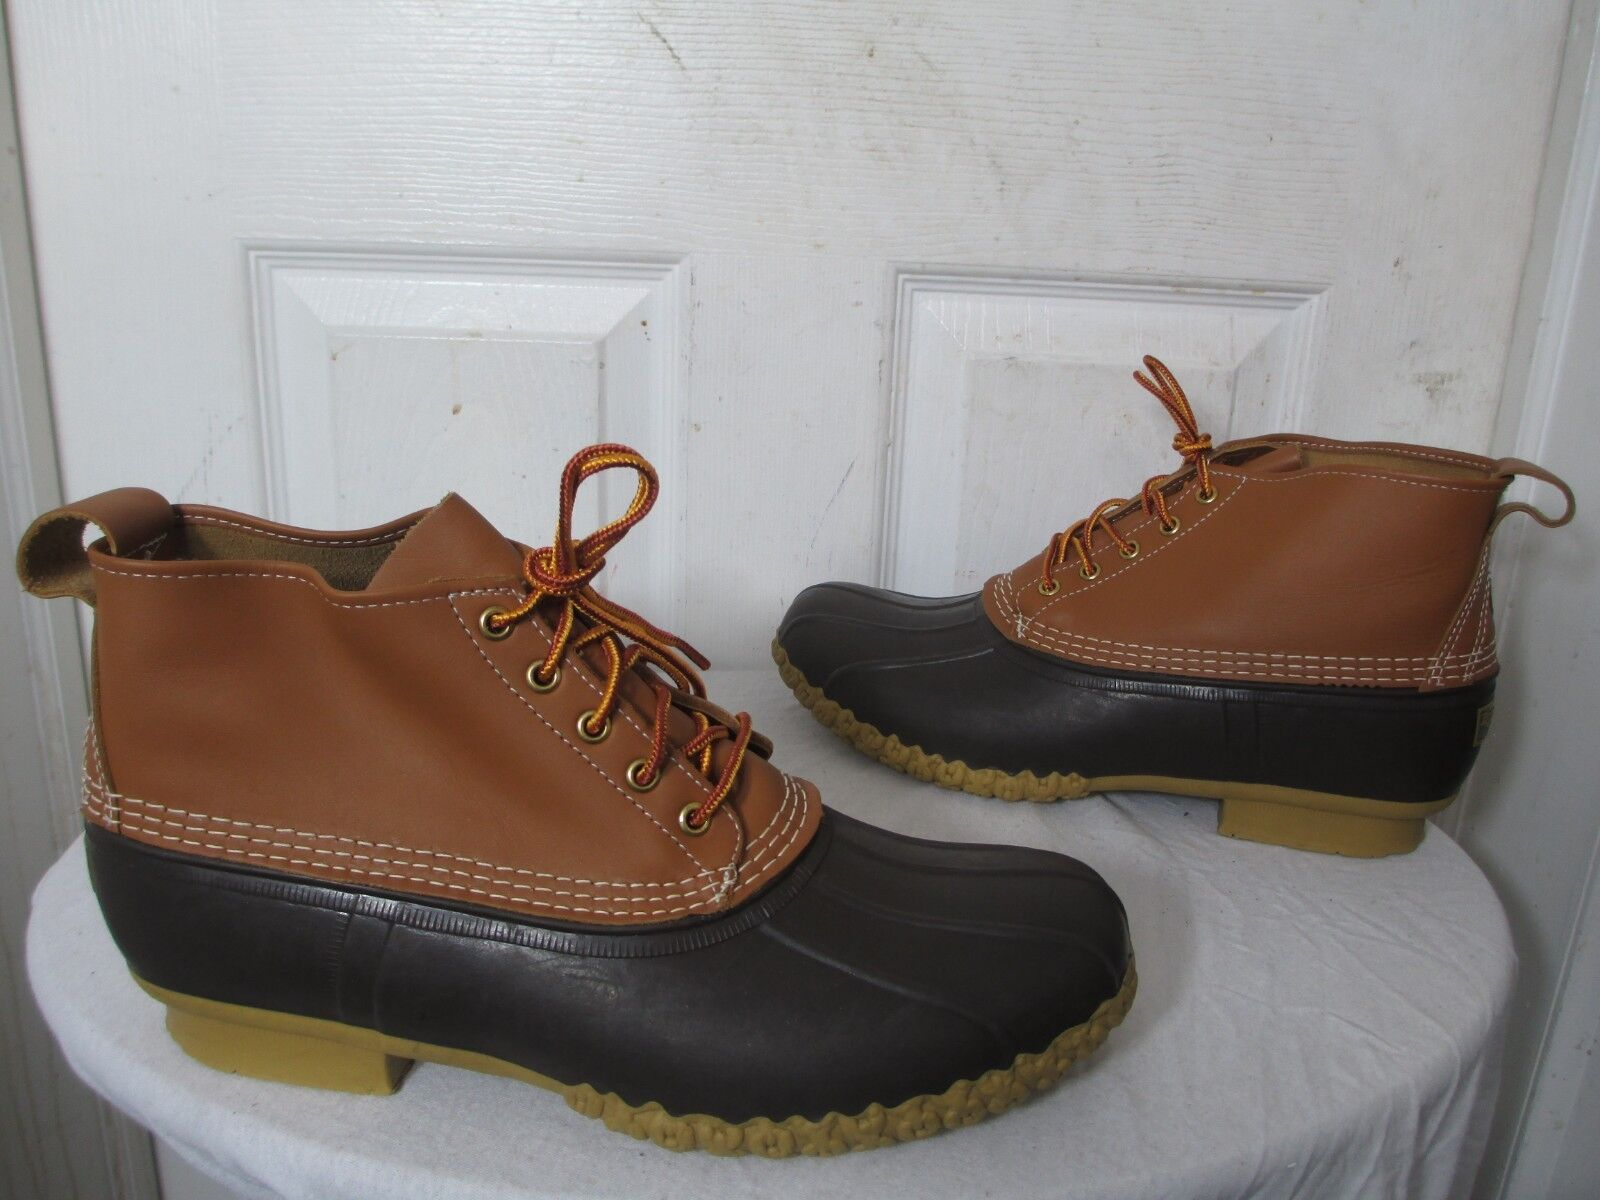 L.L. BEAN DUCK BOOTS SMALL BATCH LIMITED EDITION TAN BROWN MEN'S SIZE US 12 NEW